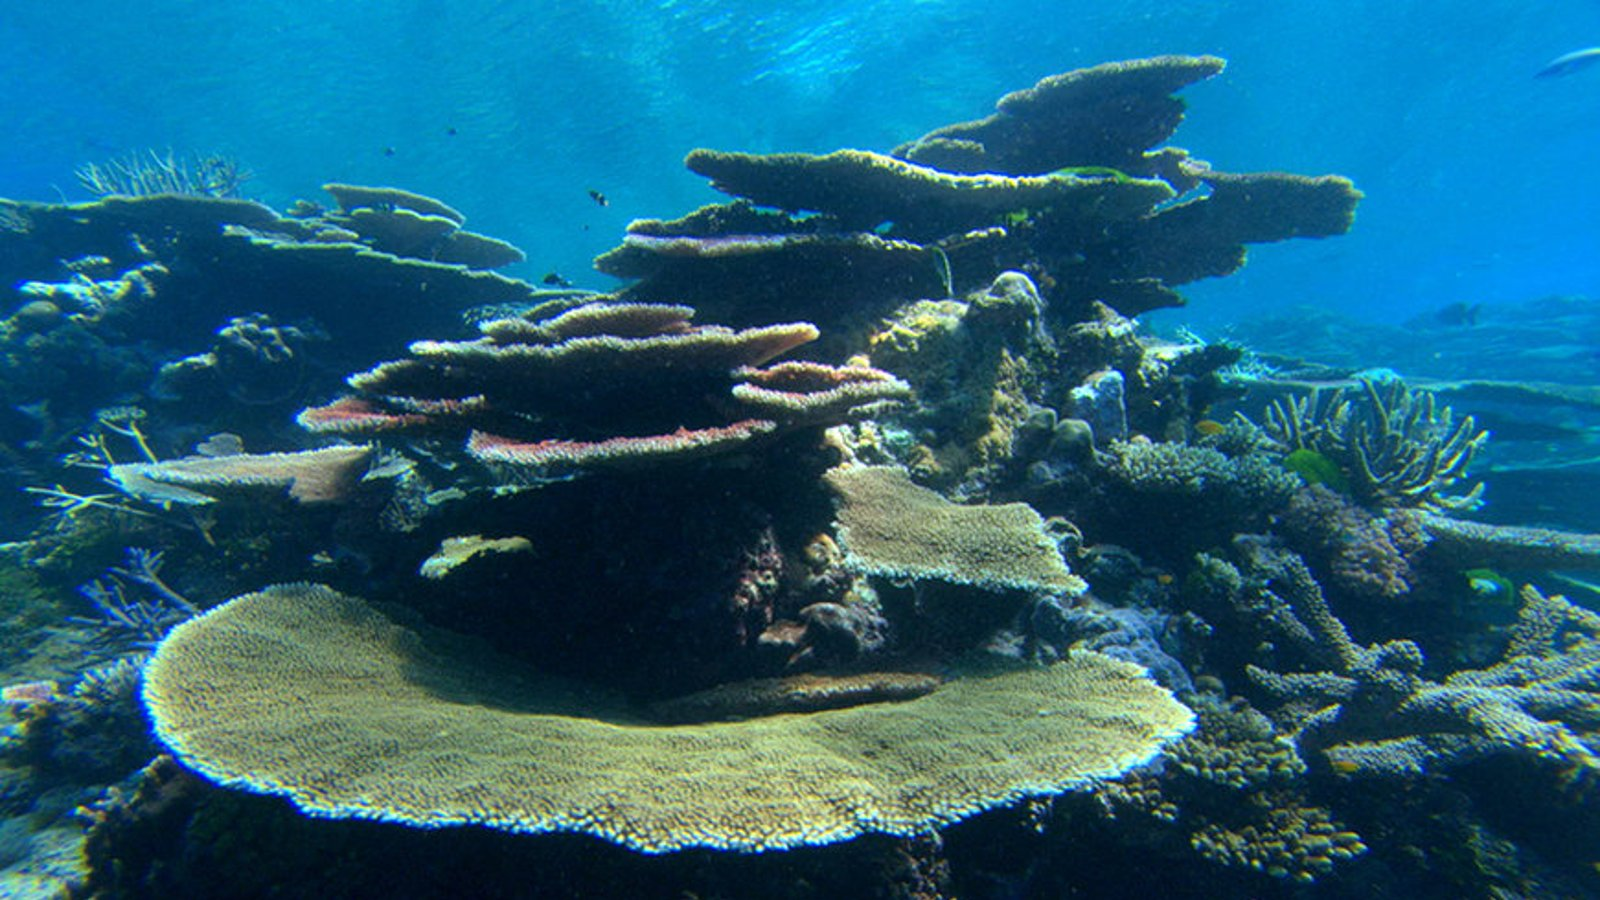 Climate Change - Coral Reefs on Edge